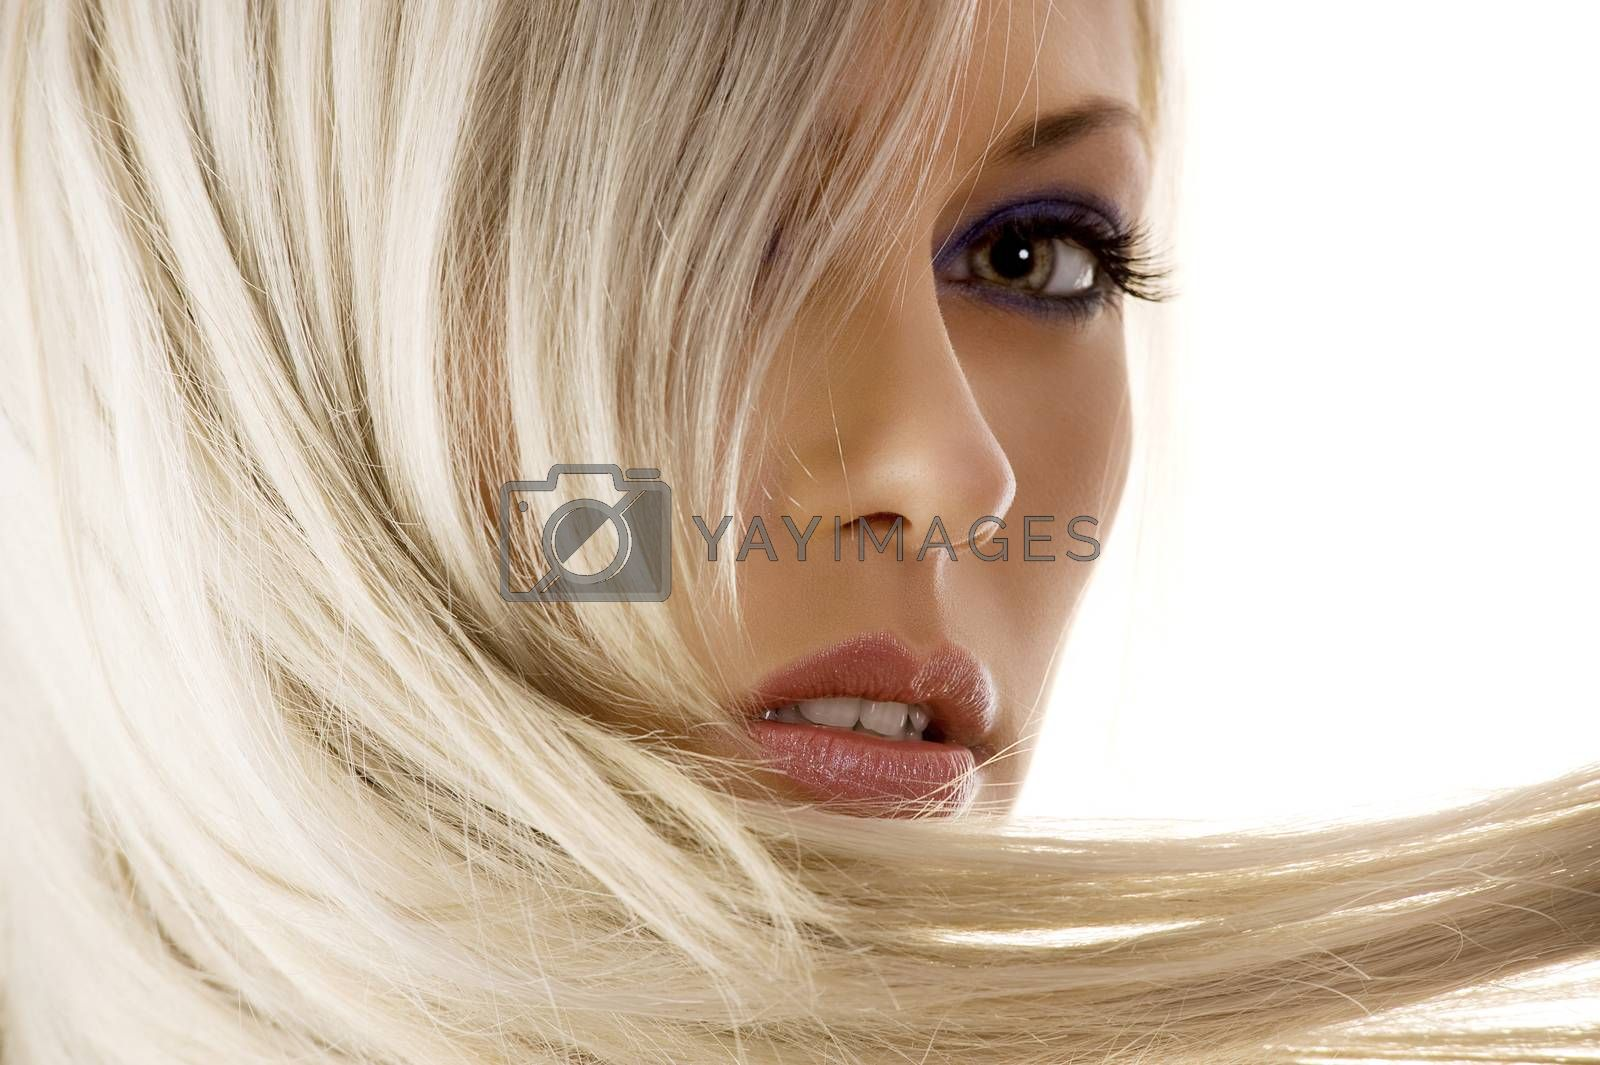 Royalty free image of closeup of blond girl by fotoCD